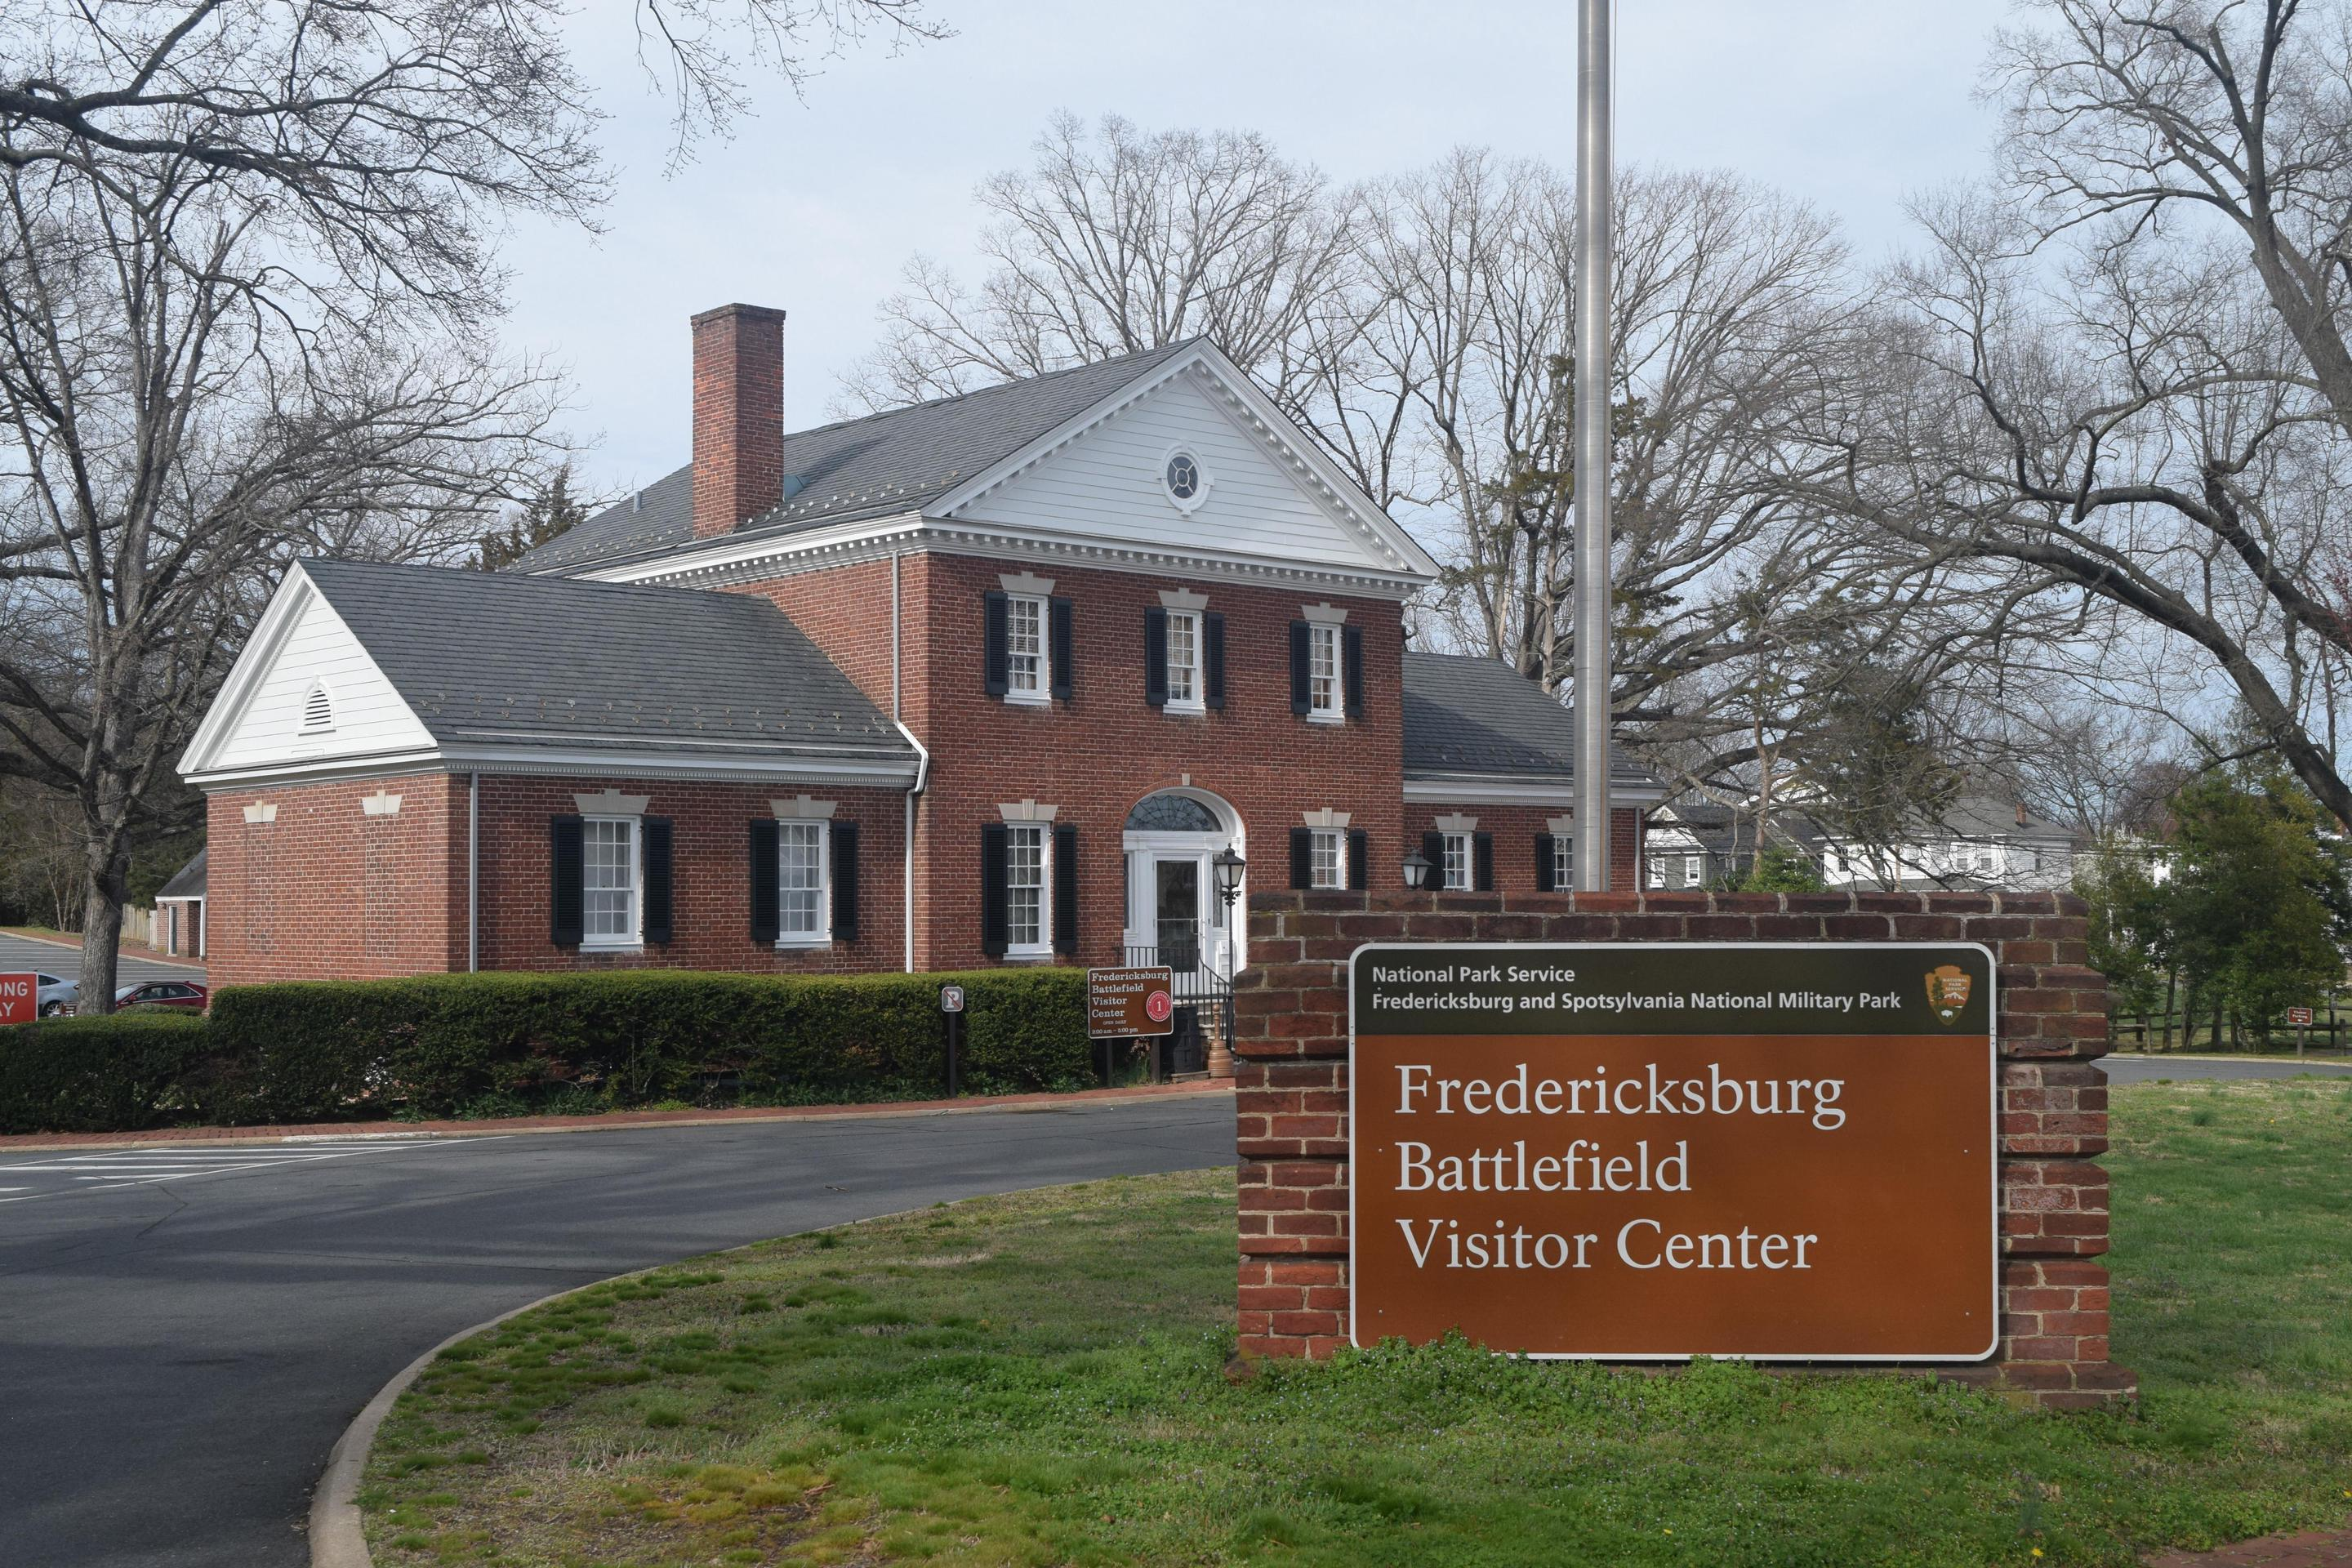 Fredericksburg Visitor Center, with signCome inside the Fredericksburg Battlefield Visitor Center for orientation, exhibit, and the park film.